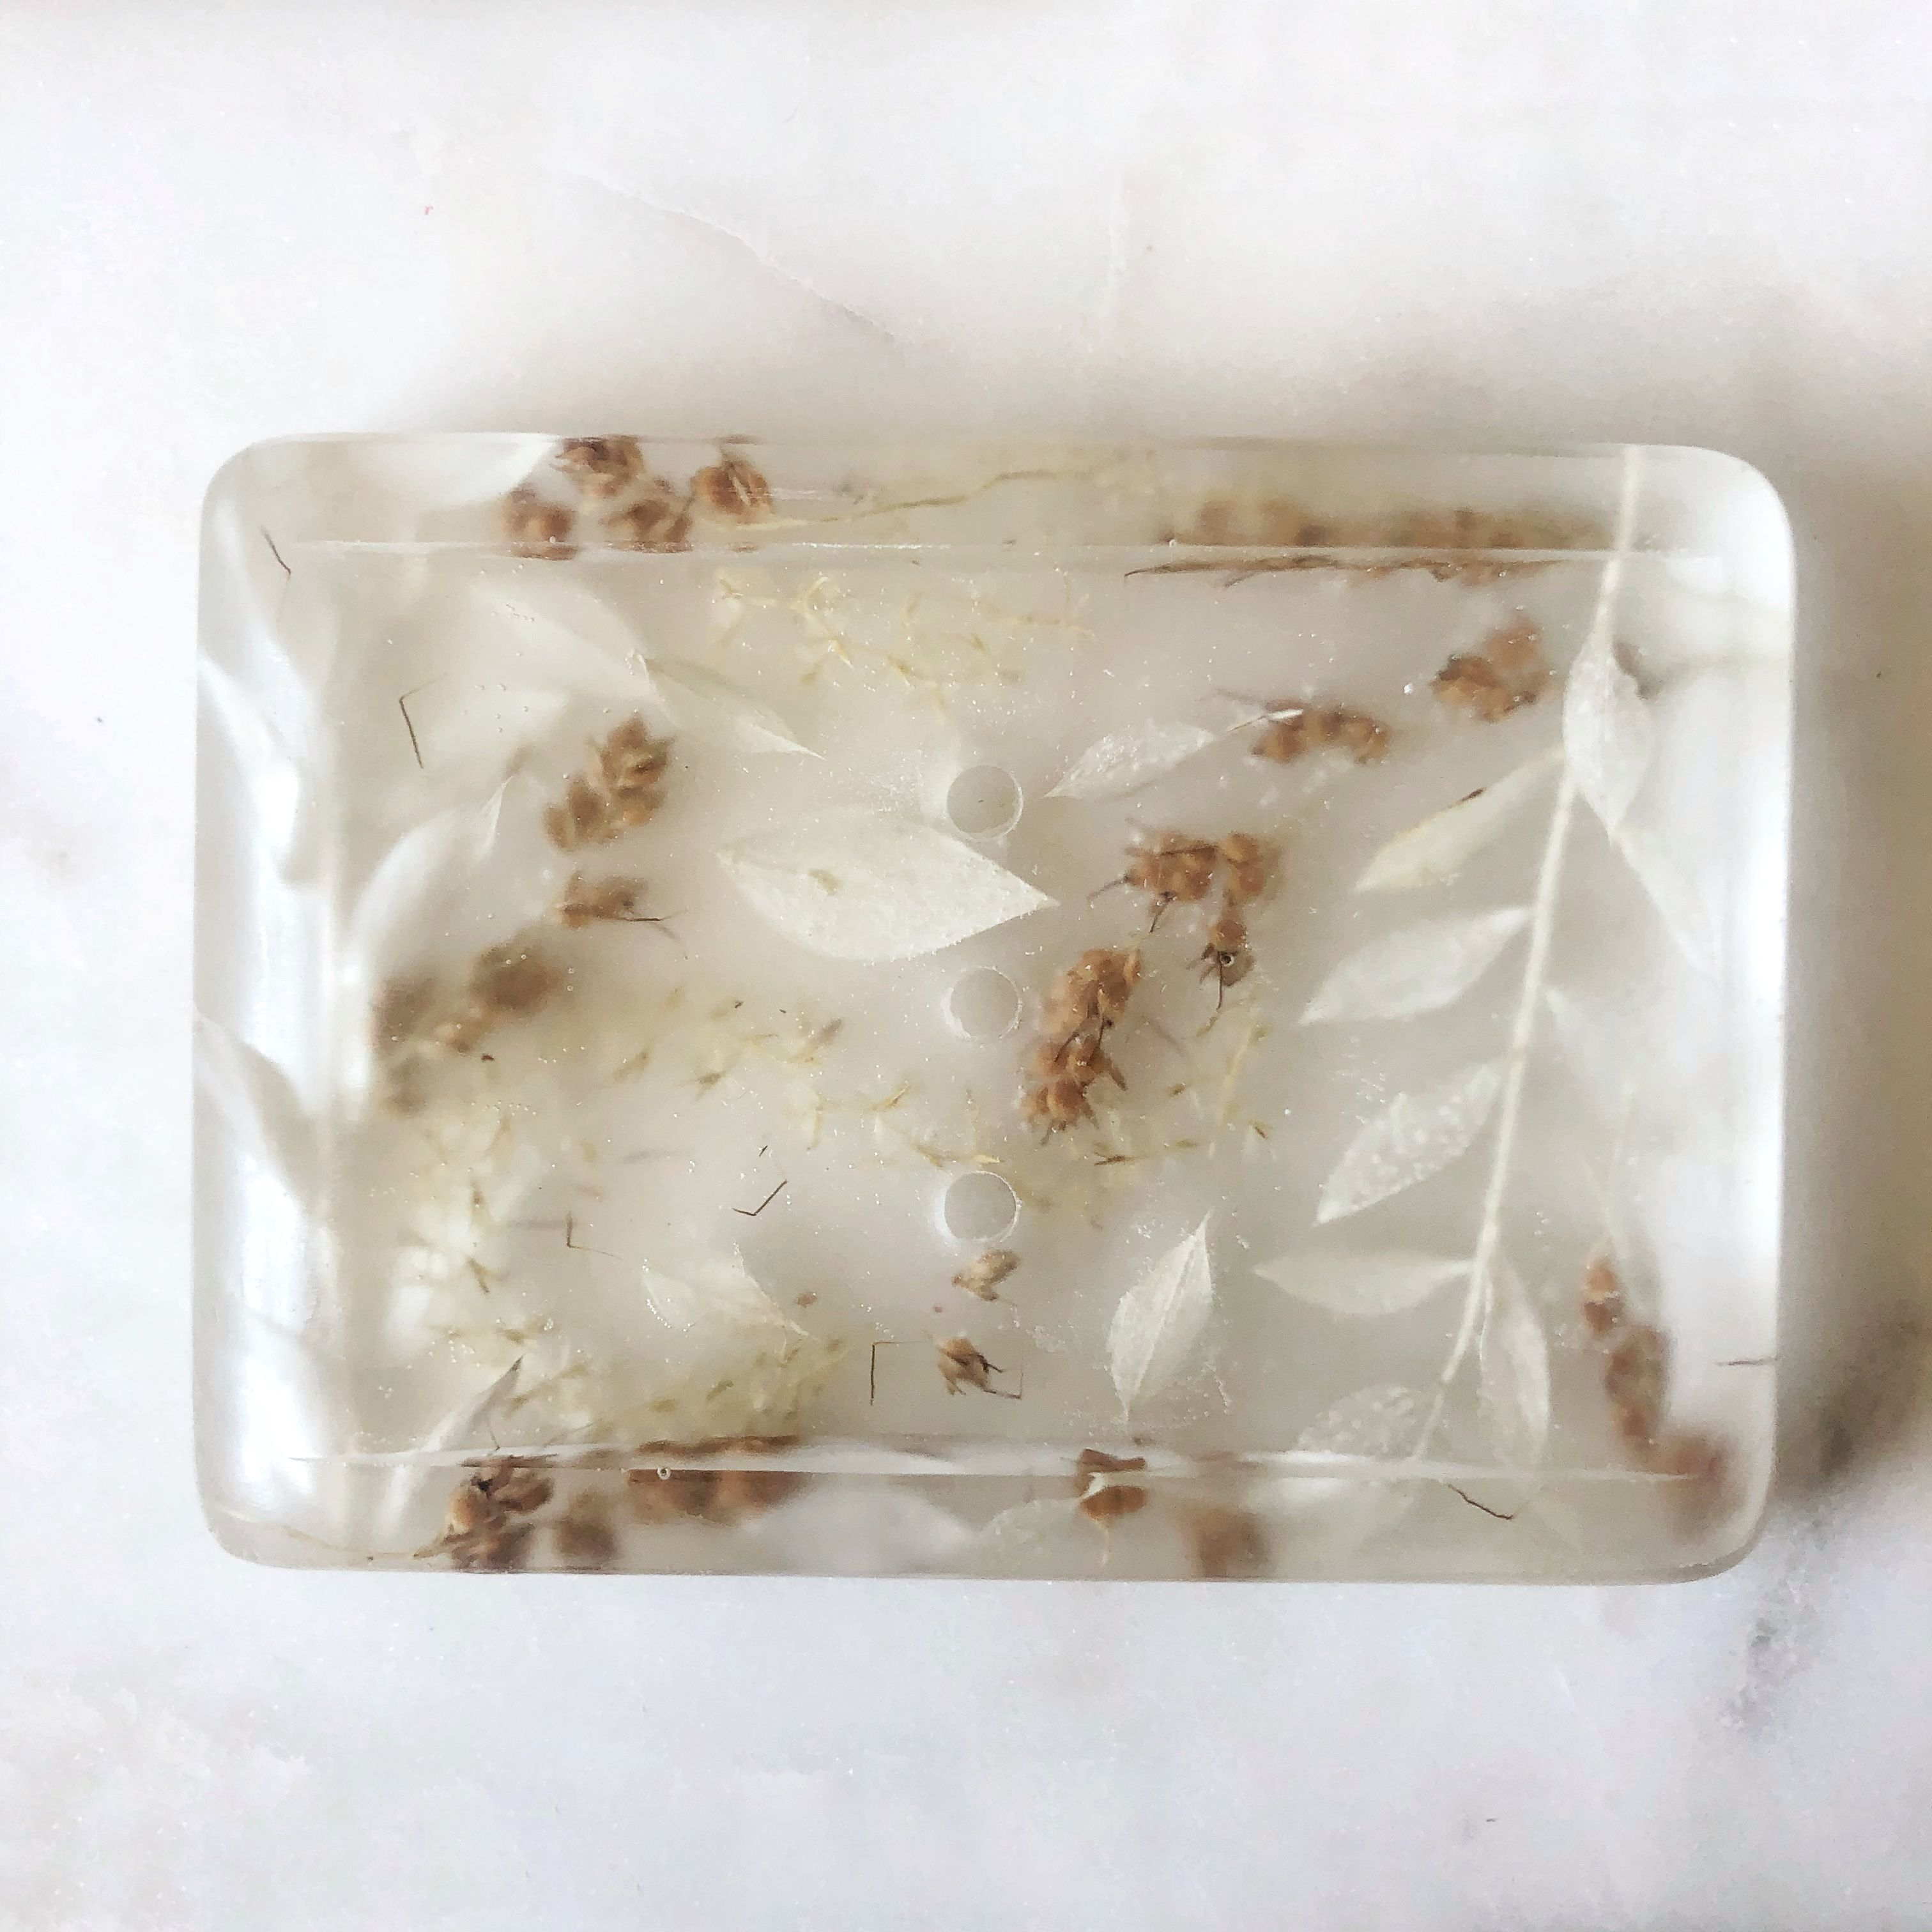 Resin Soap Dishes in 2020 Dish soap, Dishes, Handcrafted